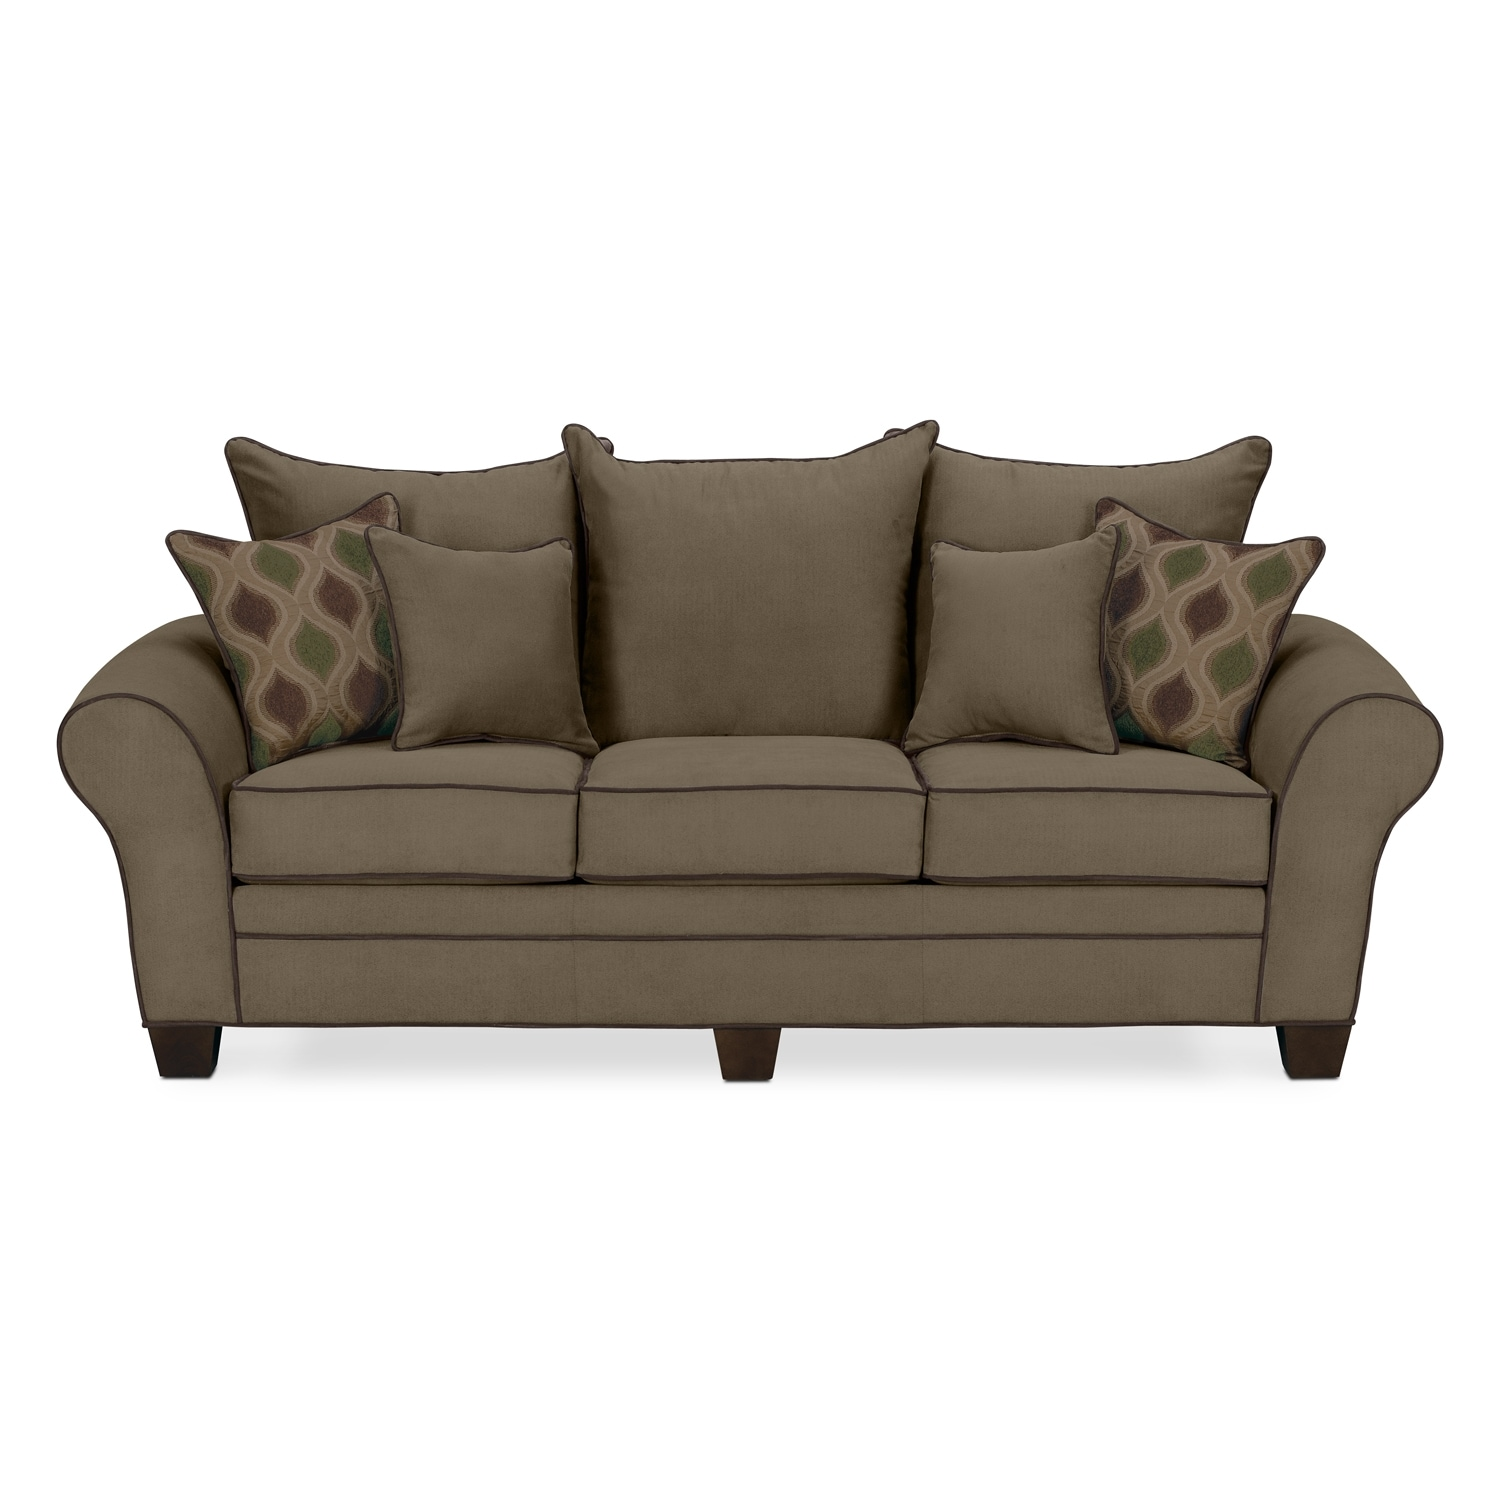 Rendezvous sofa olive american signature furniture for Signature furniture